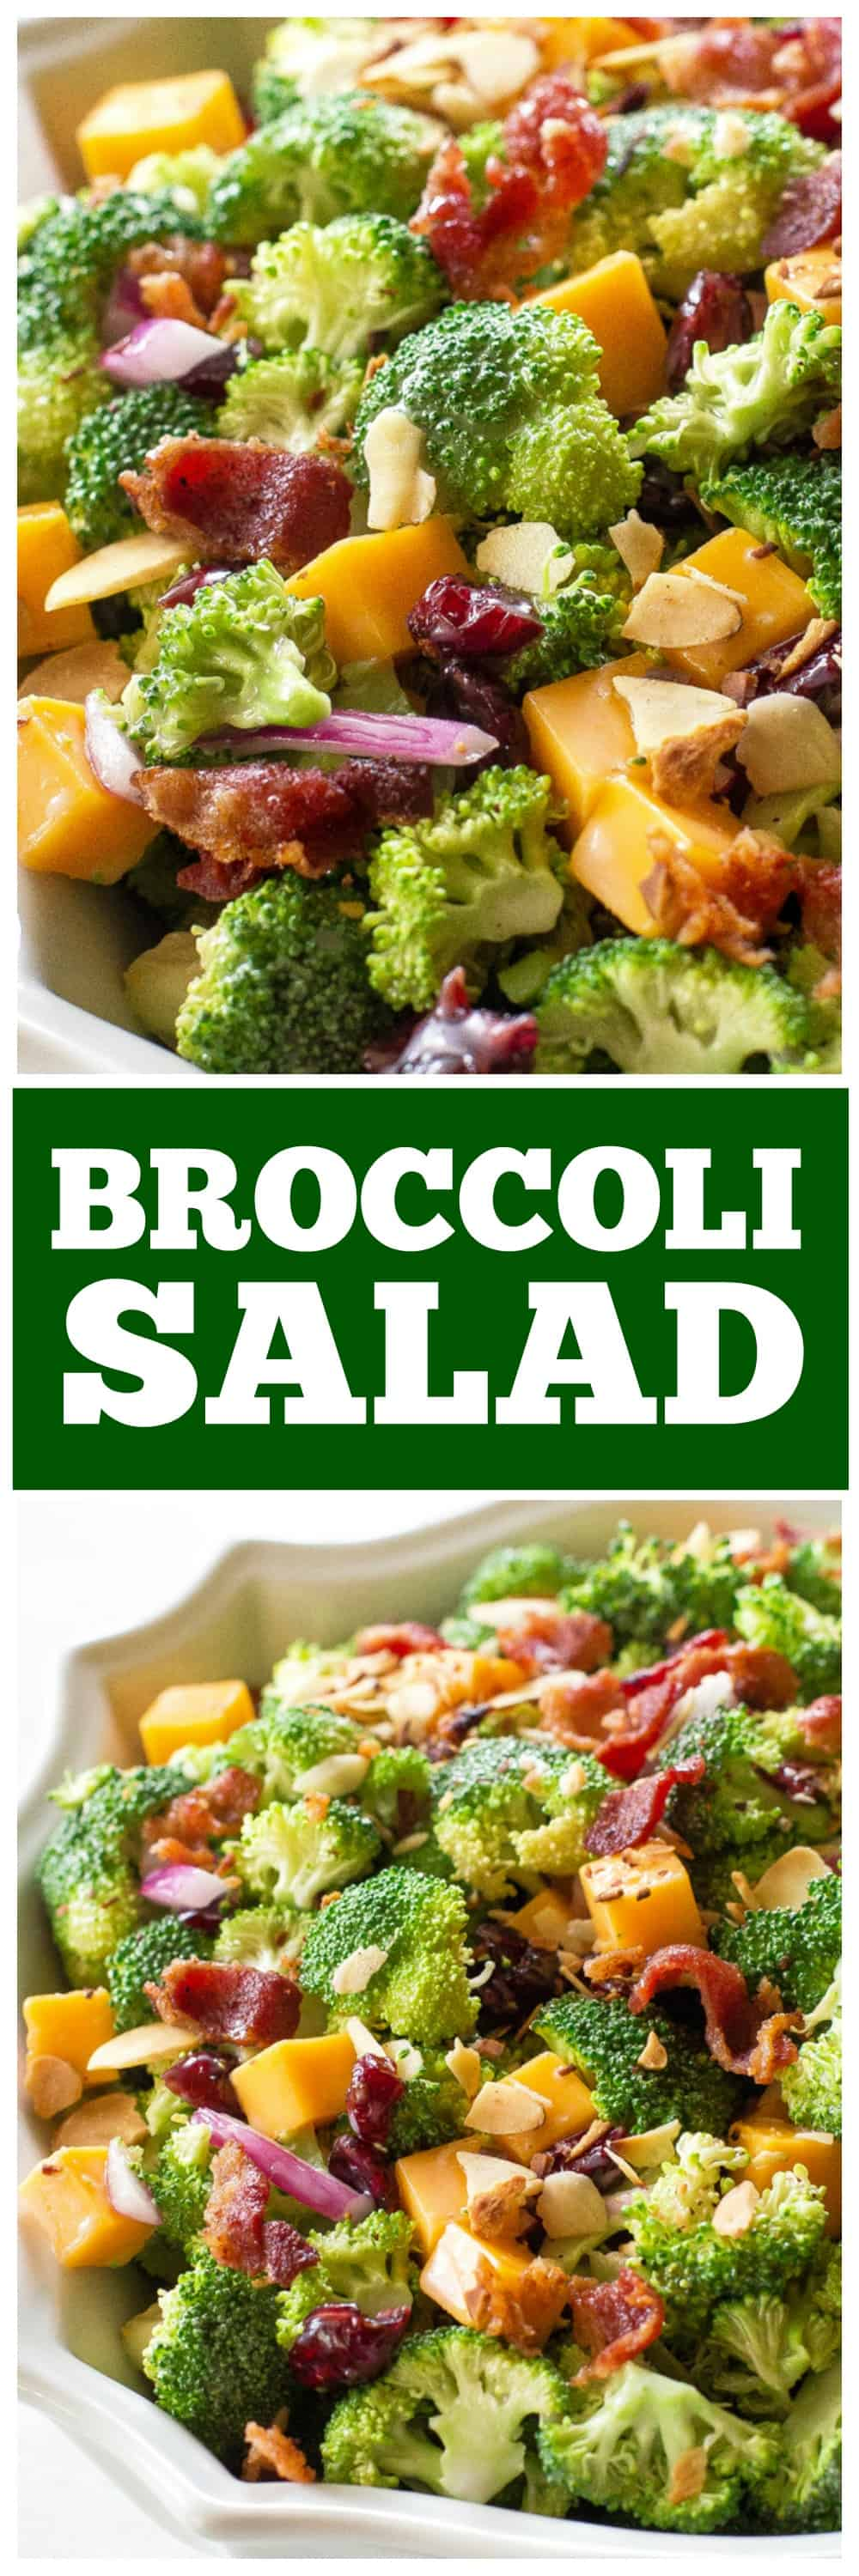 Broccoli Salad in a bowl